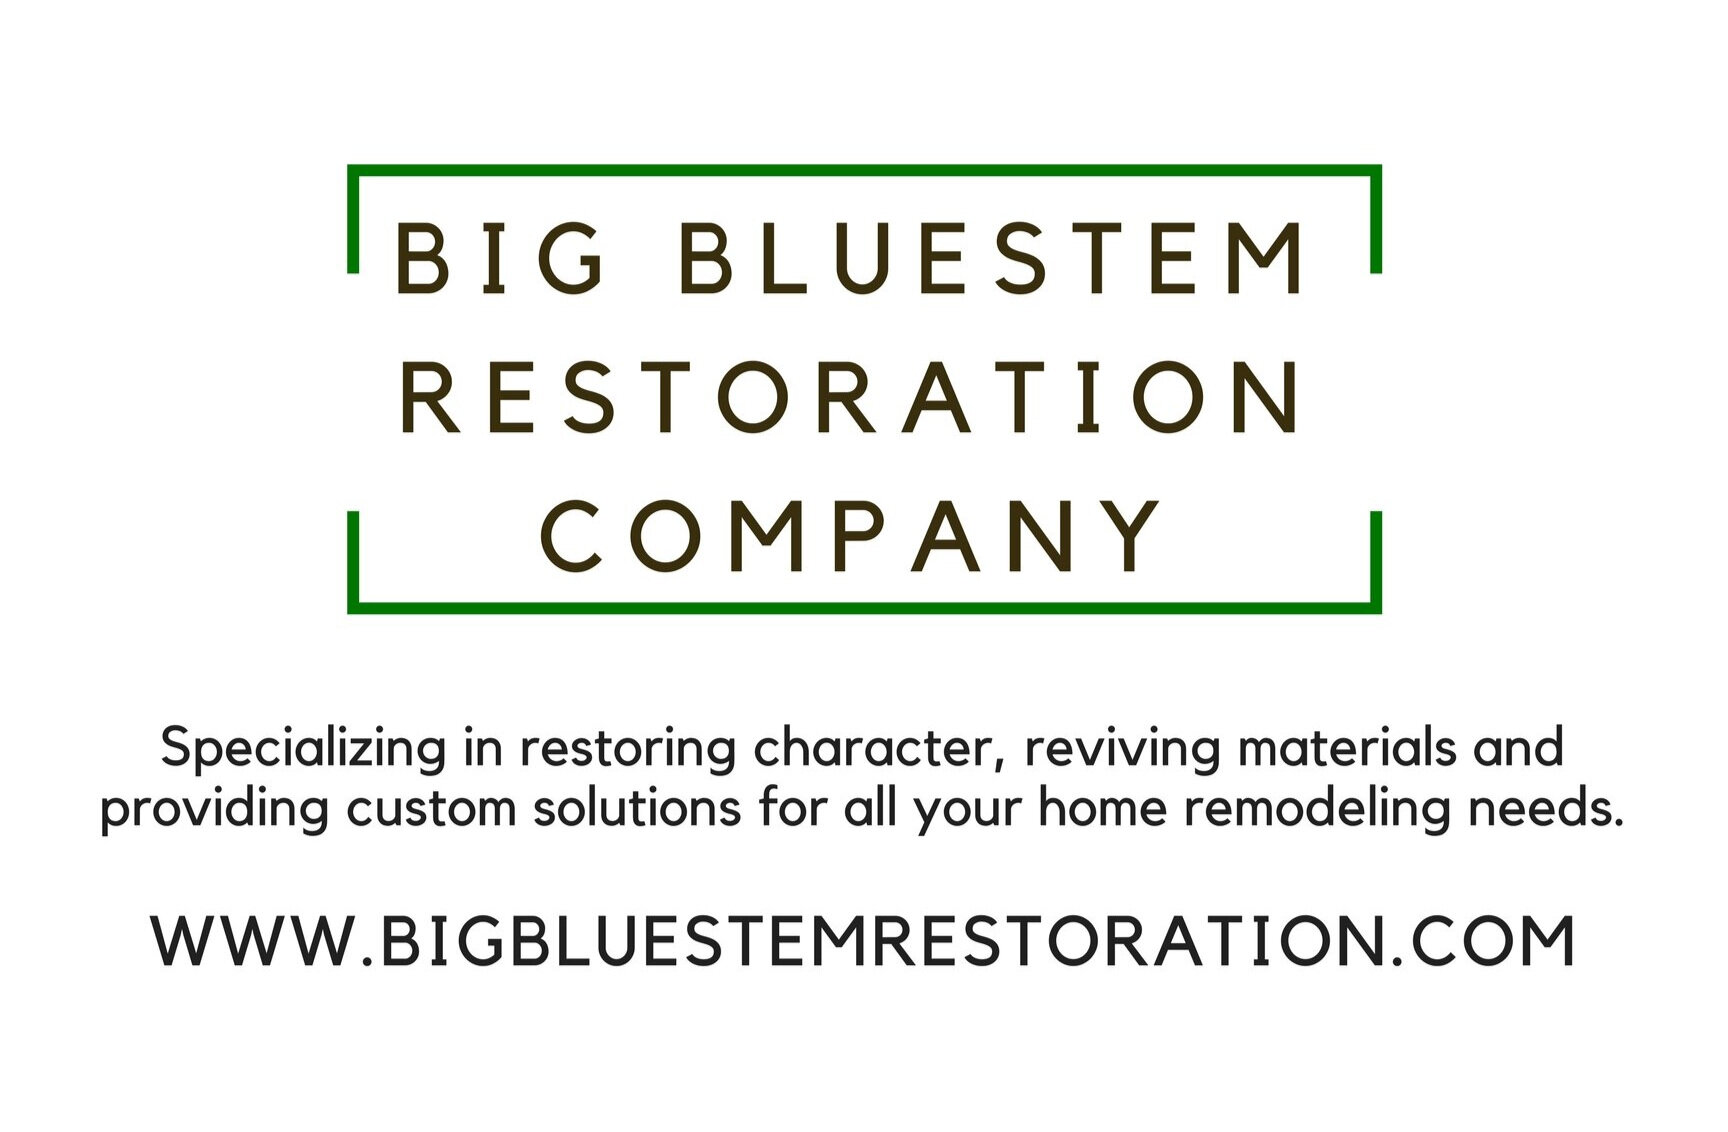 BB Restoration Company Website - FacebookInstagram